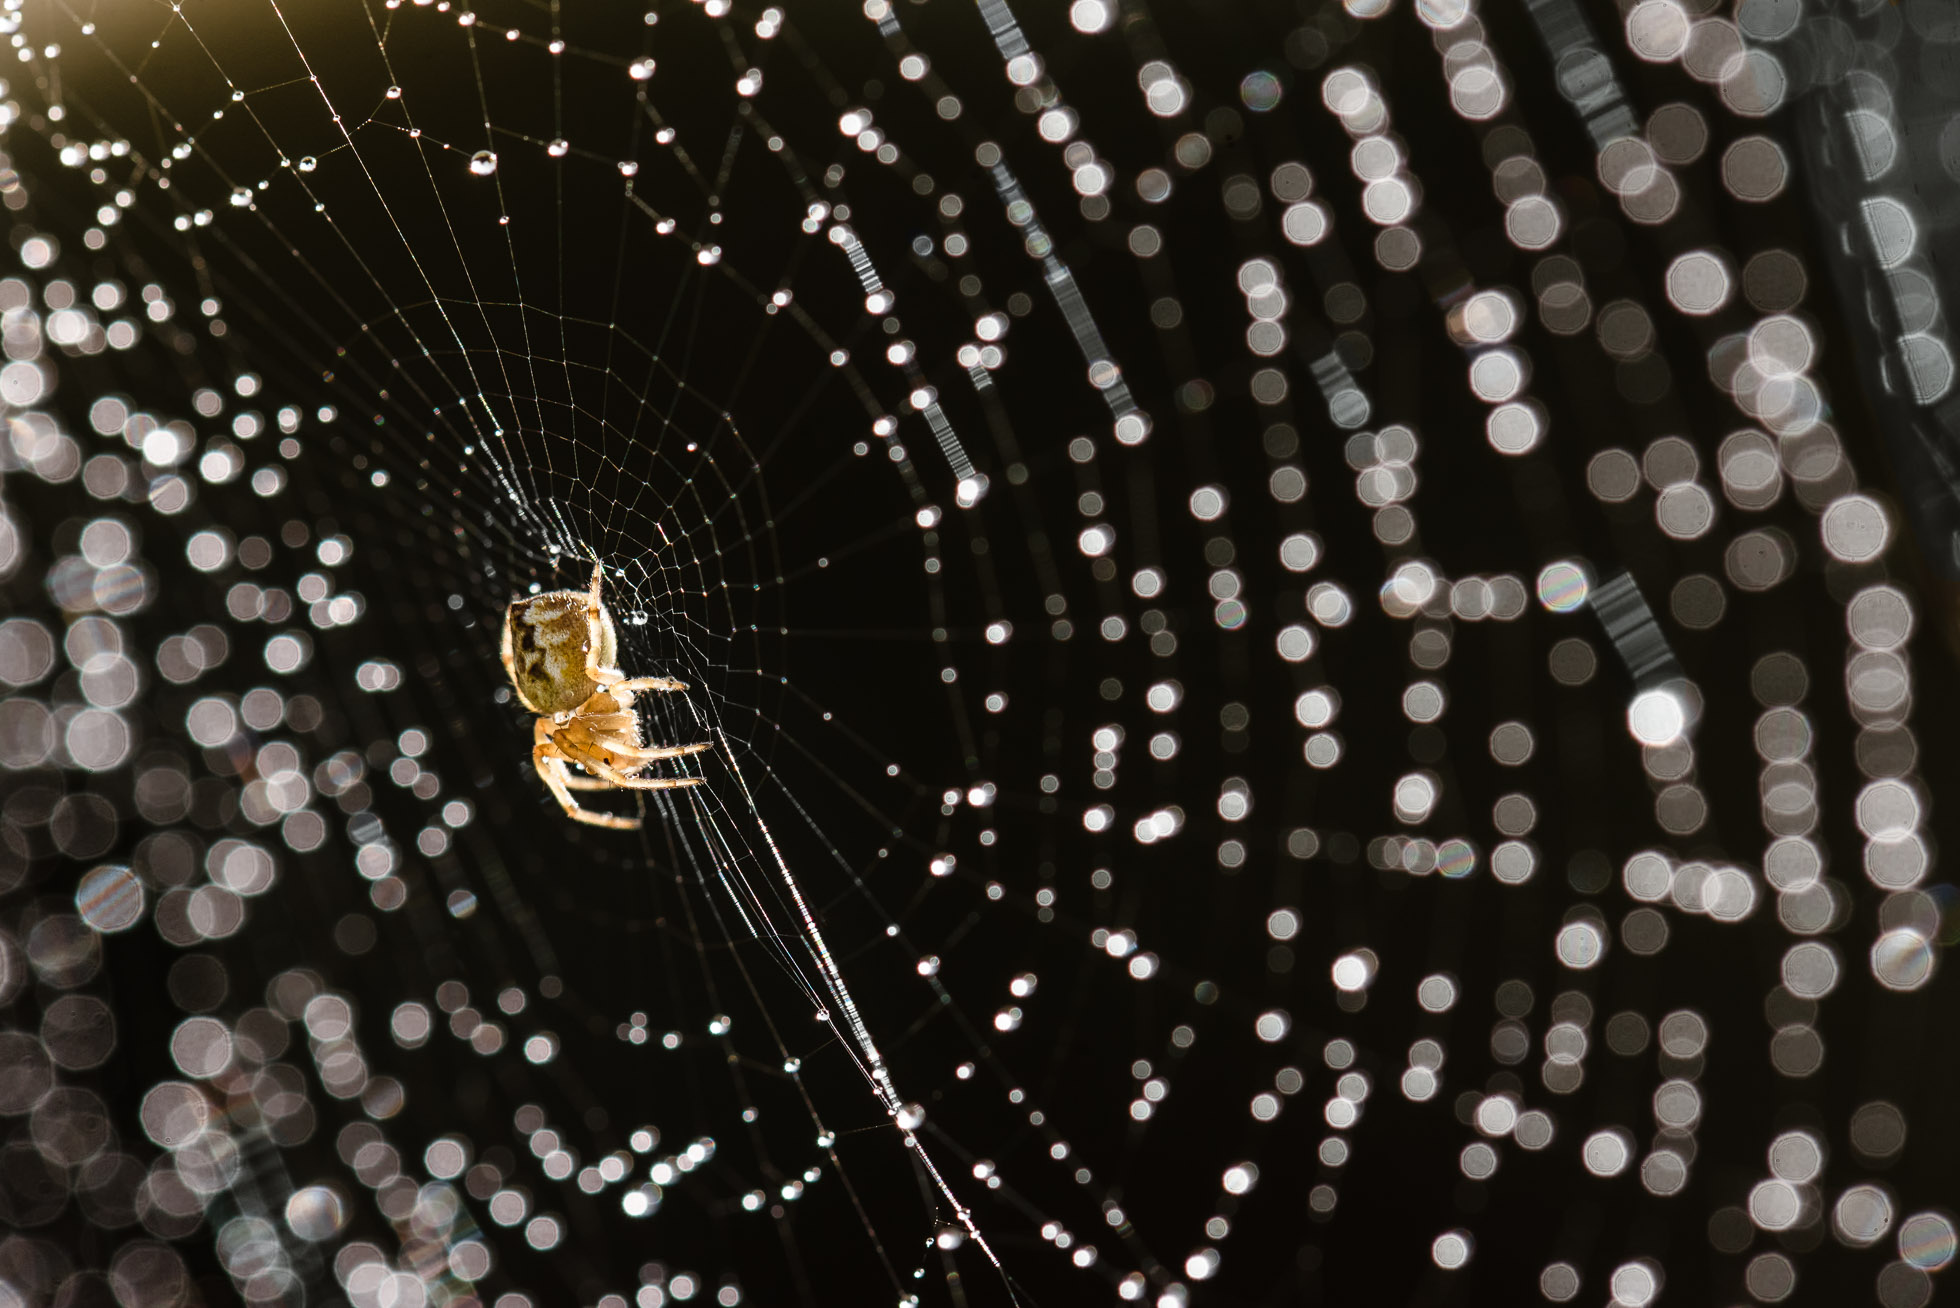 close-up-macro-photo-of-tiny-backyard-garden-spider-on-wet-web-with-beautiful-light-in-New-Zealand-during-lockdown